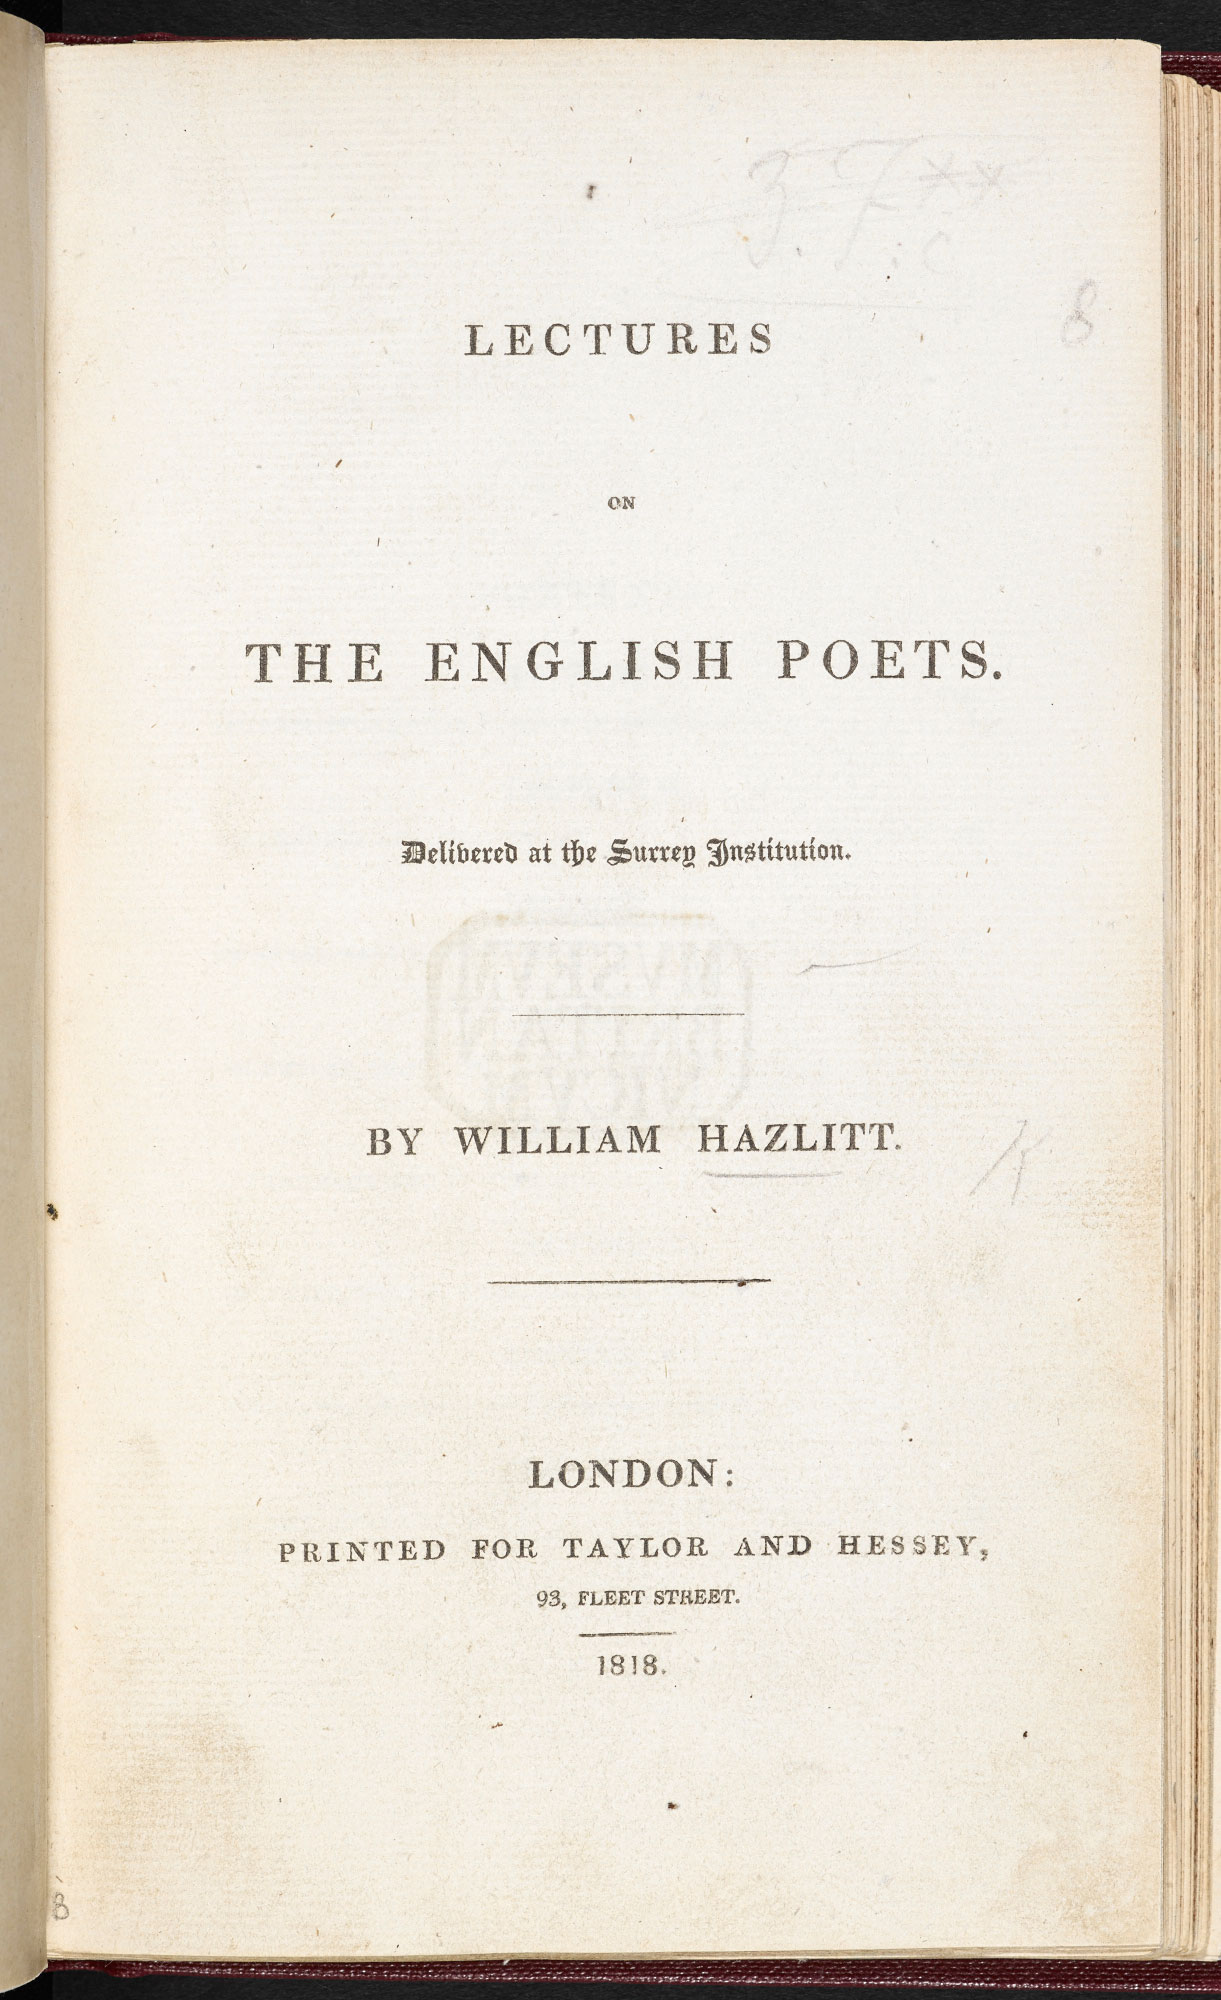 Hazlitt's Lectures on the English Poets